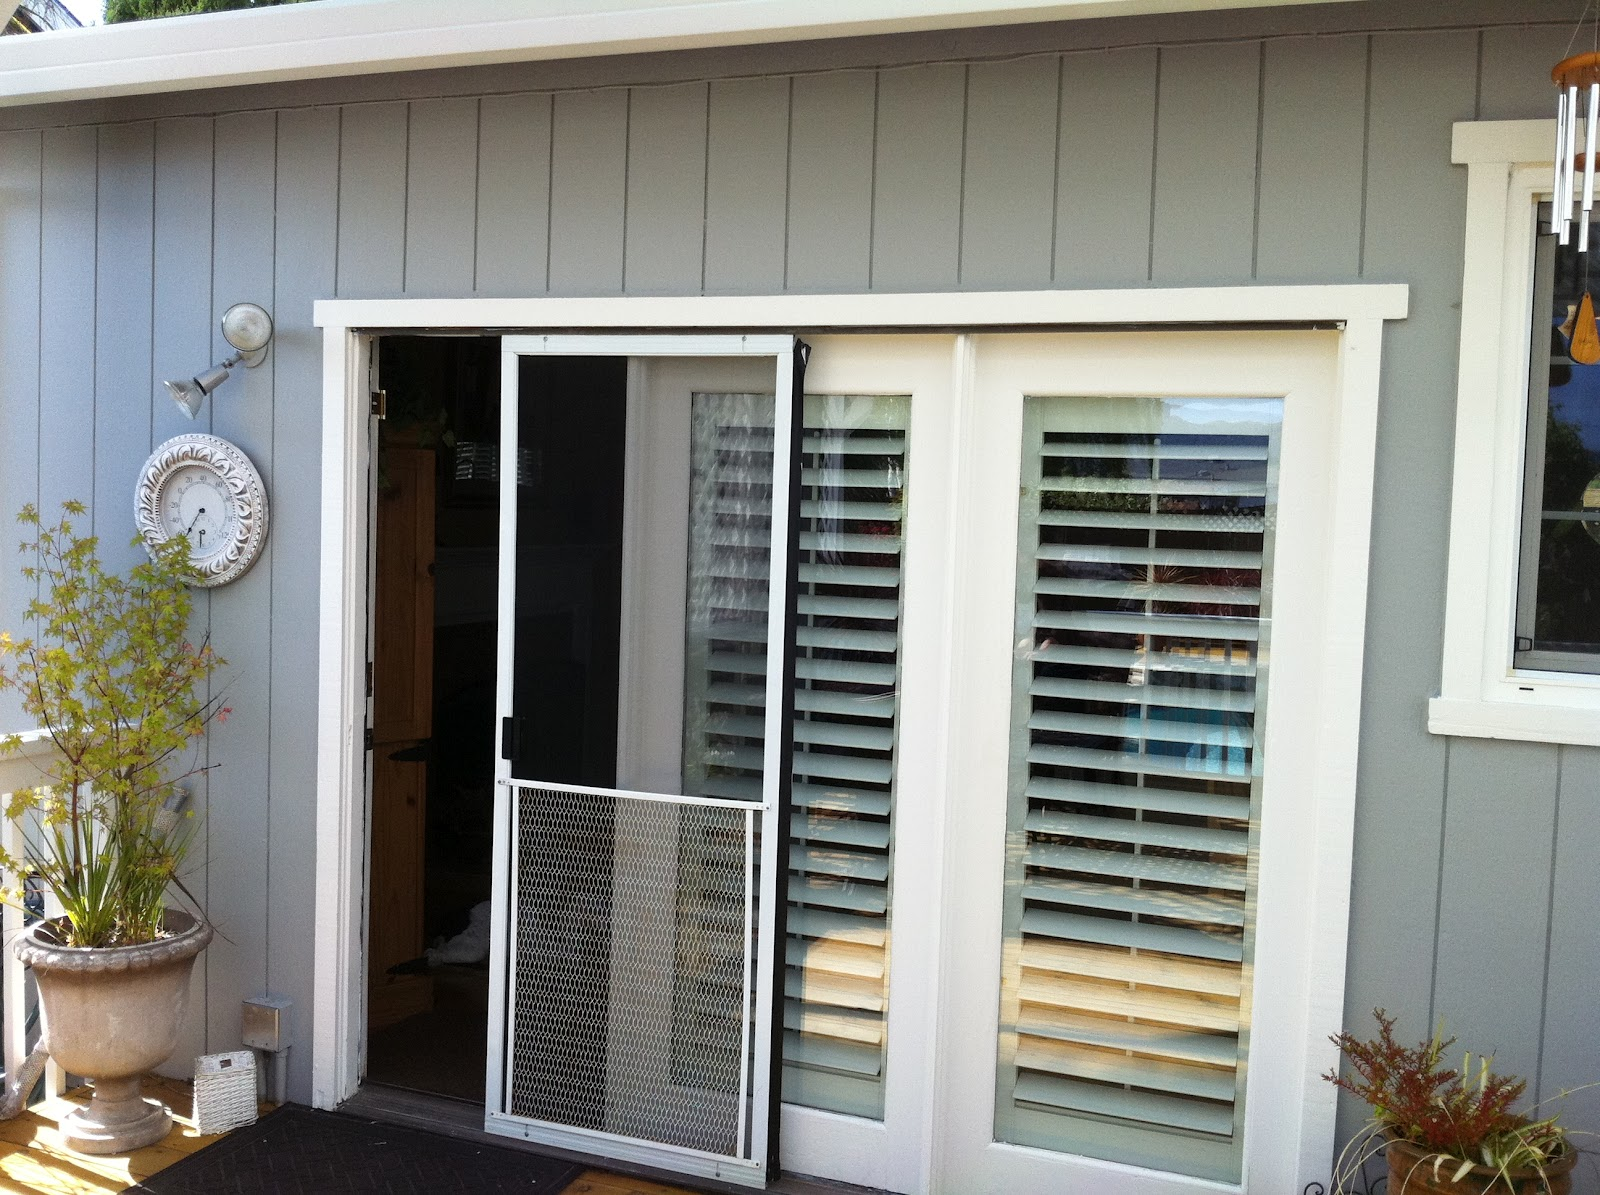 1195 #806B4B Marvin Clad Inswing Door Before And After Photos Marin Glass And  save image Clad Doors 47571600